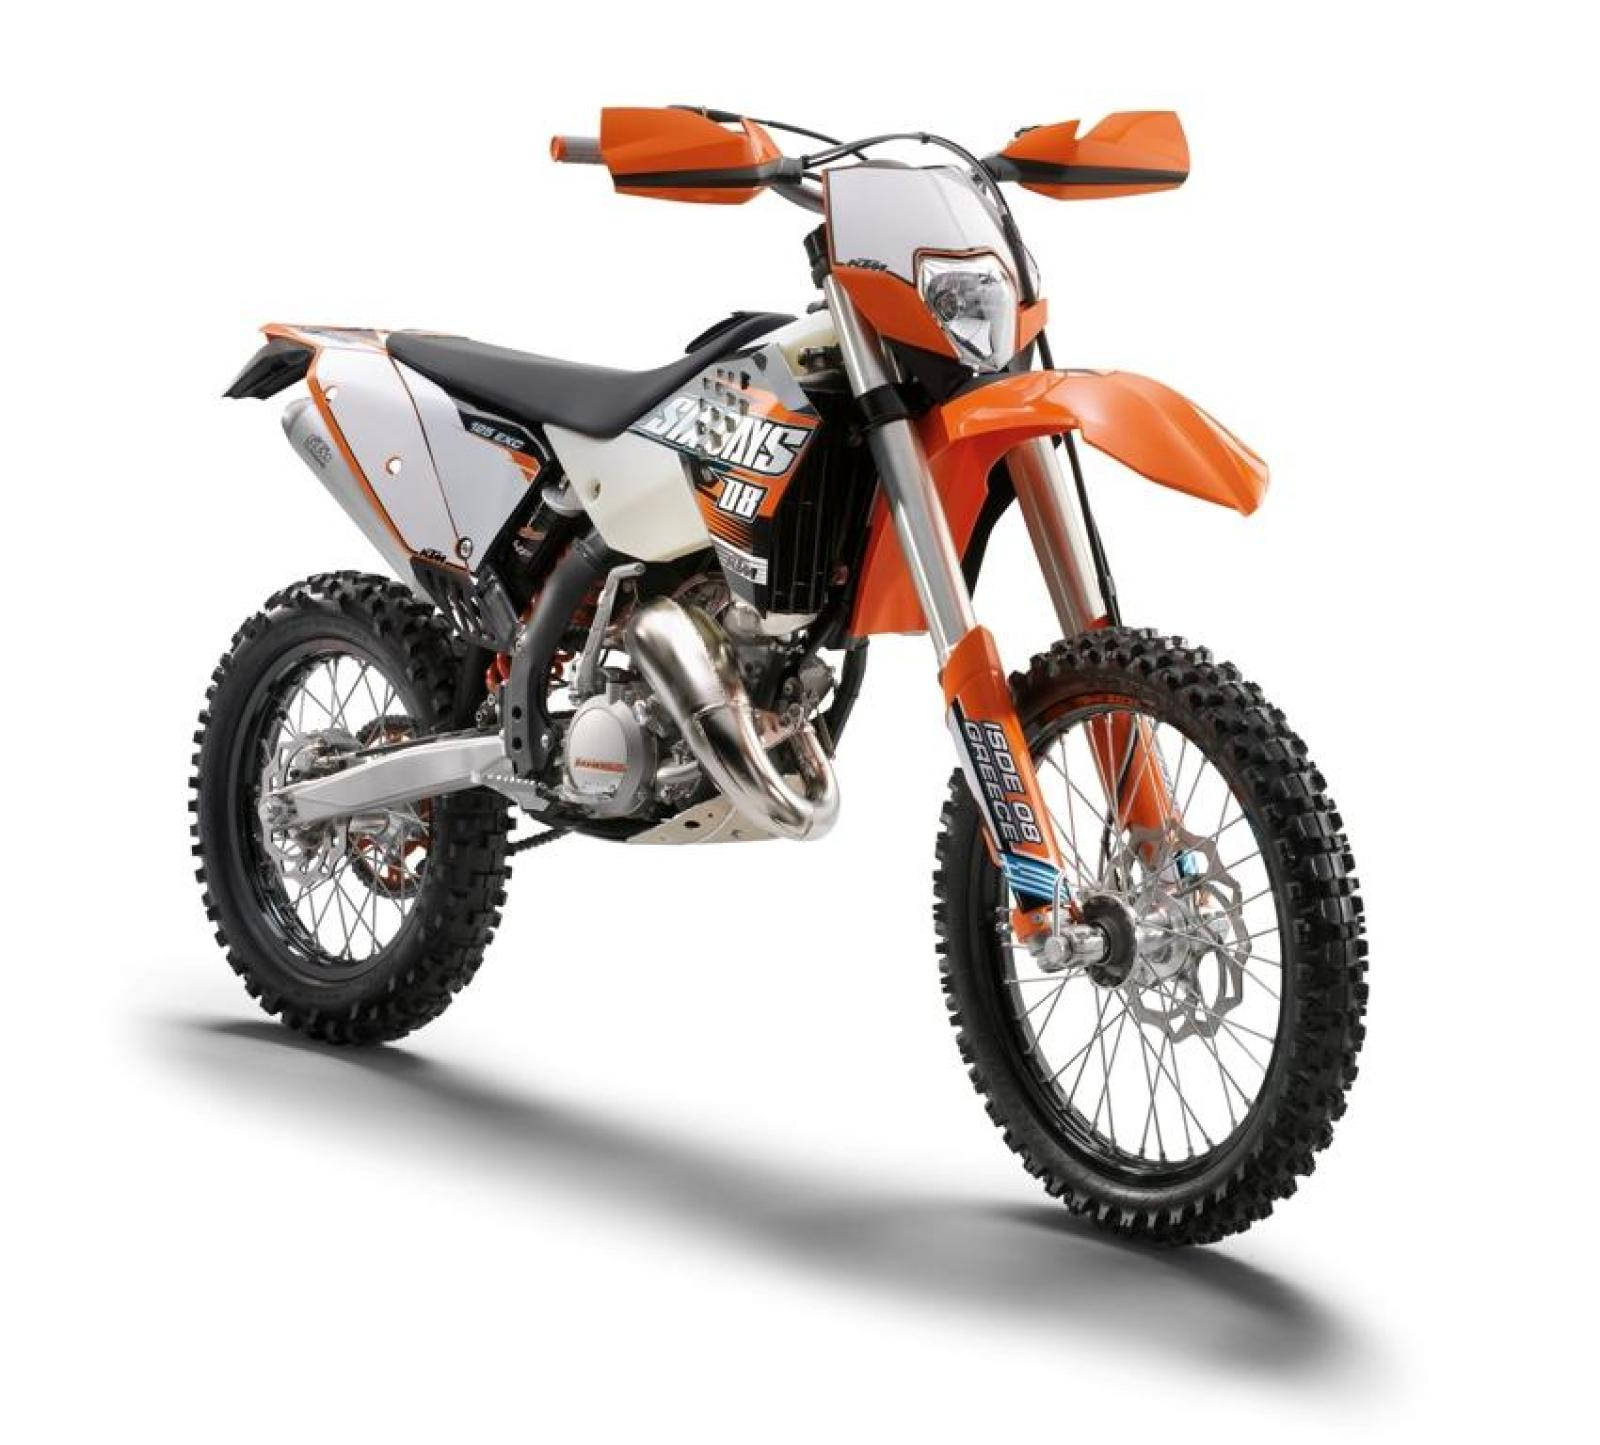 hight resolution of wiring diagram ktm 125 exc six days 200 wiring diagram ktm duke 200 electrical wiring diagram ktm 200 wiring diagram